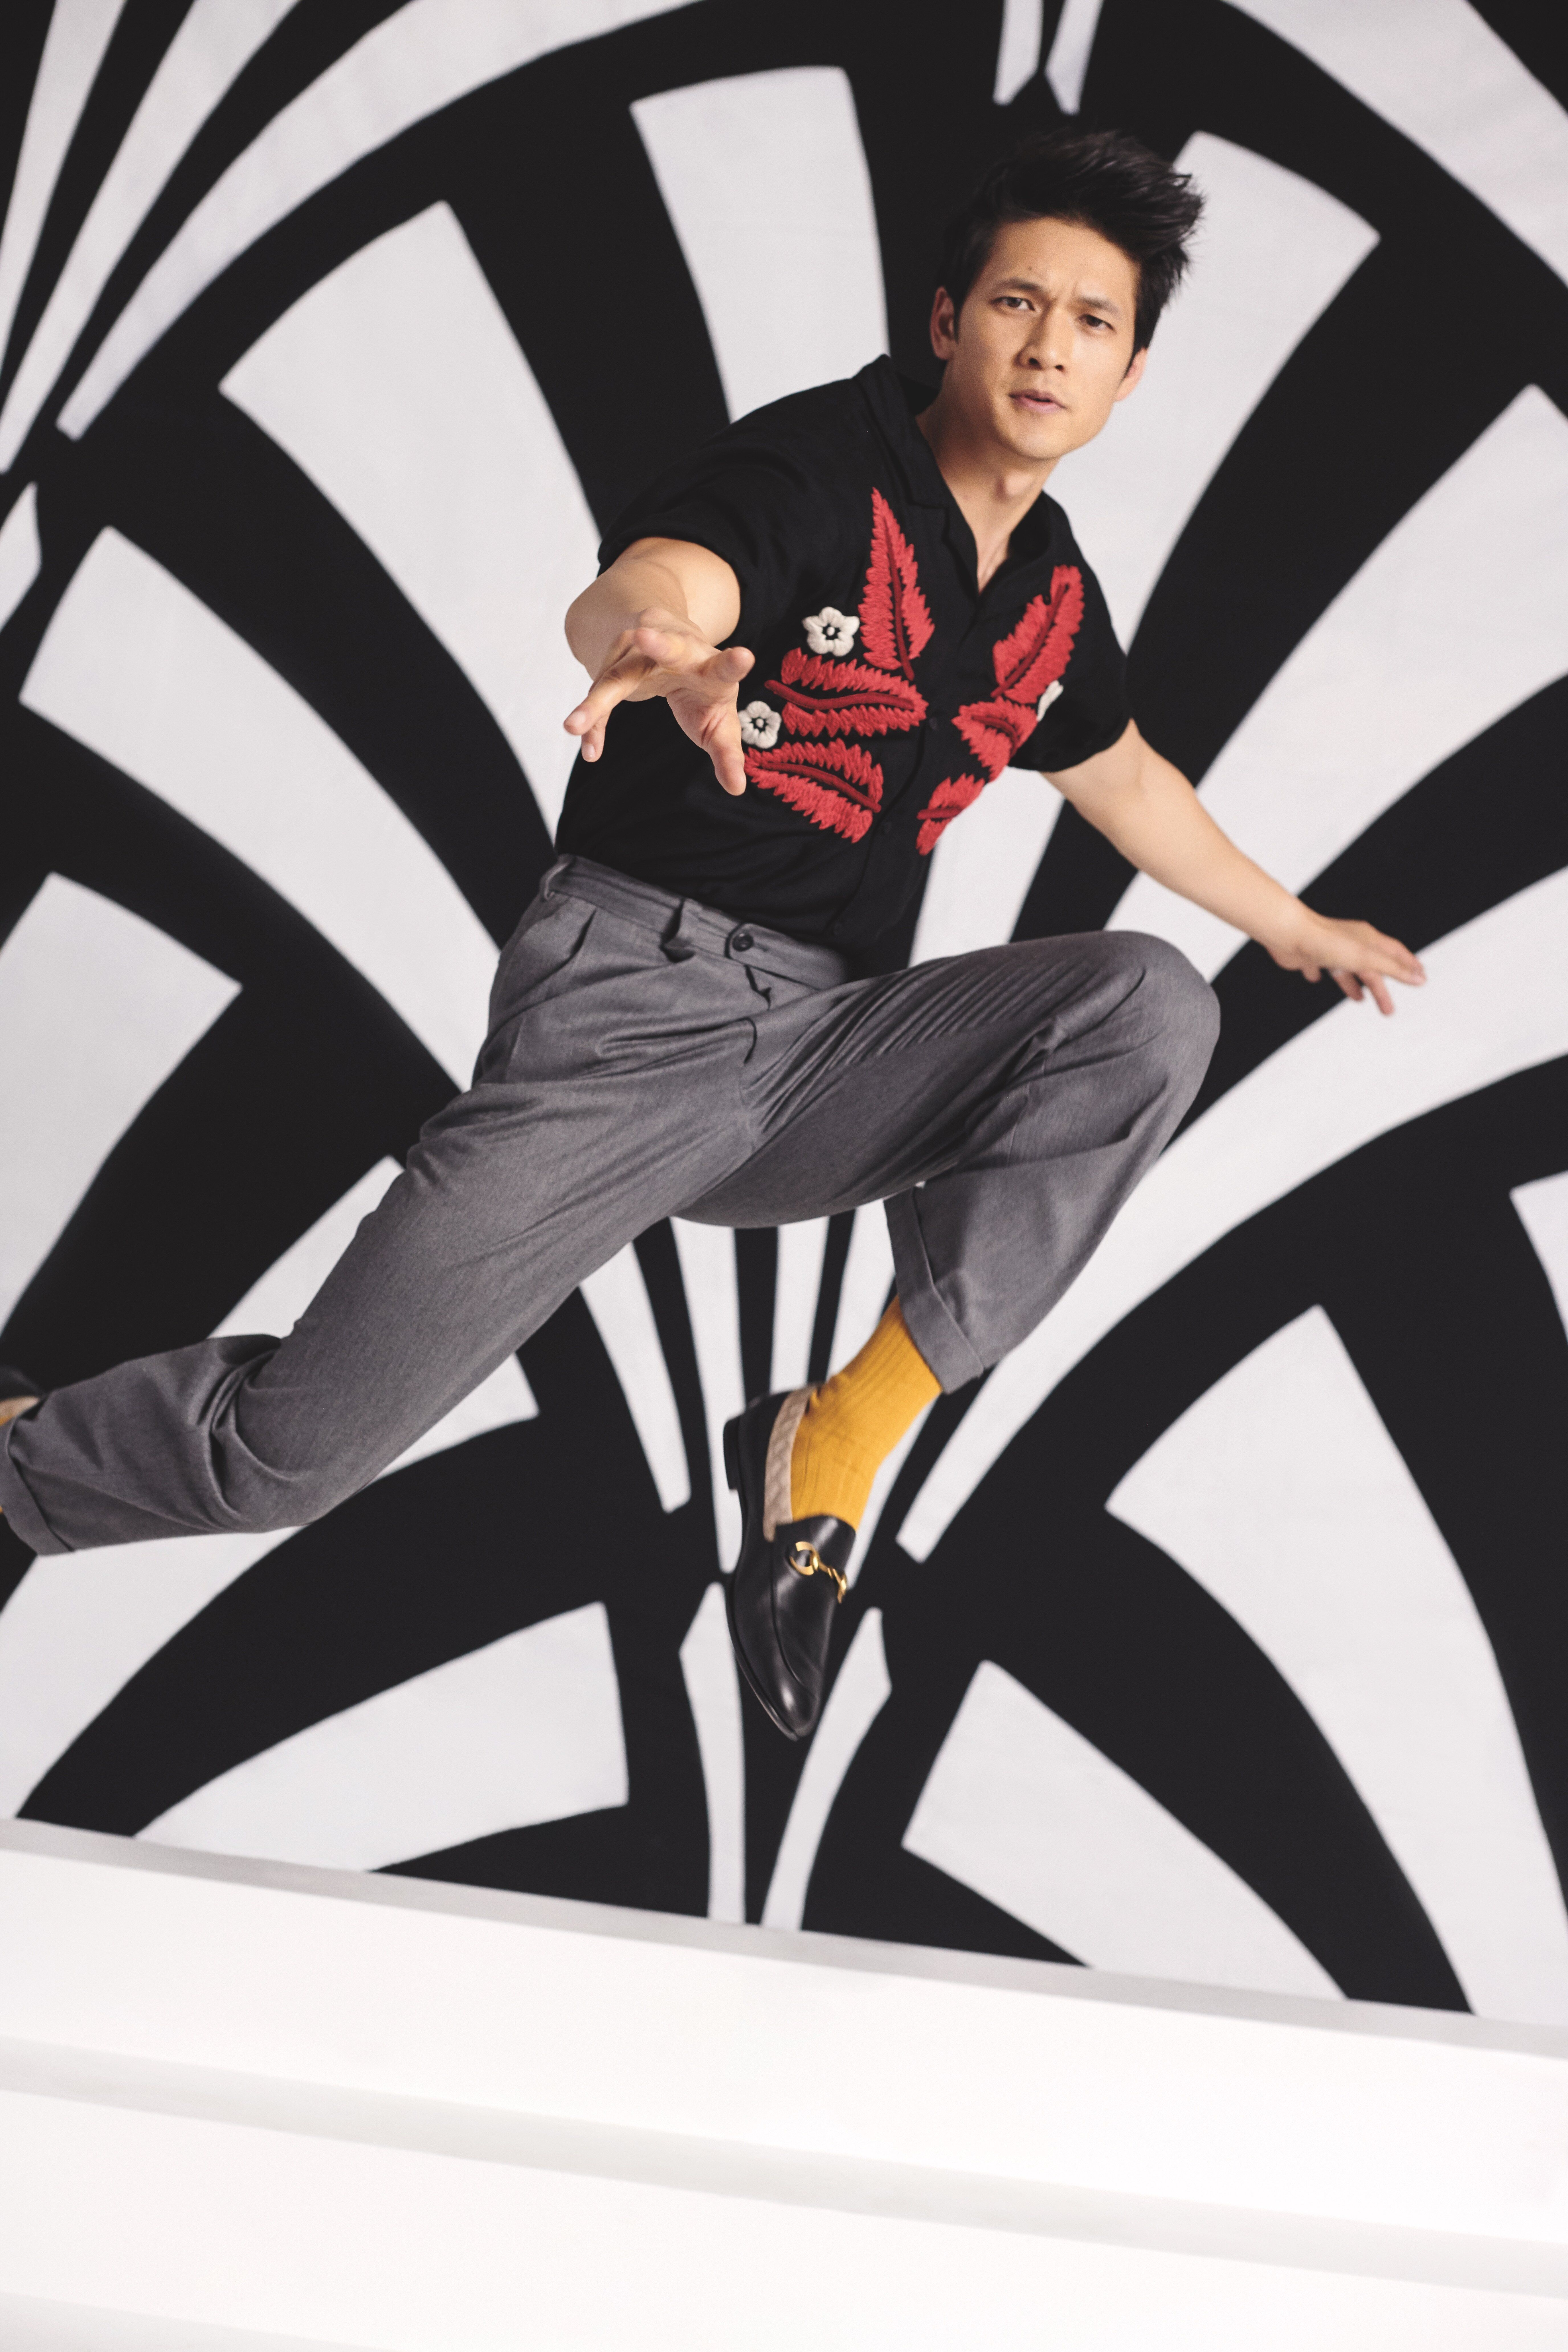 """I credit dance, specifically the many forms of hip-hop styles, to feeling like I belonged in a group,"" says Harry Shum"